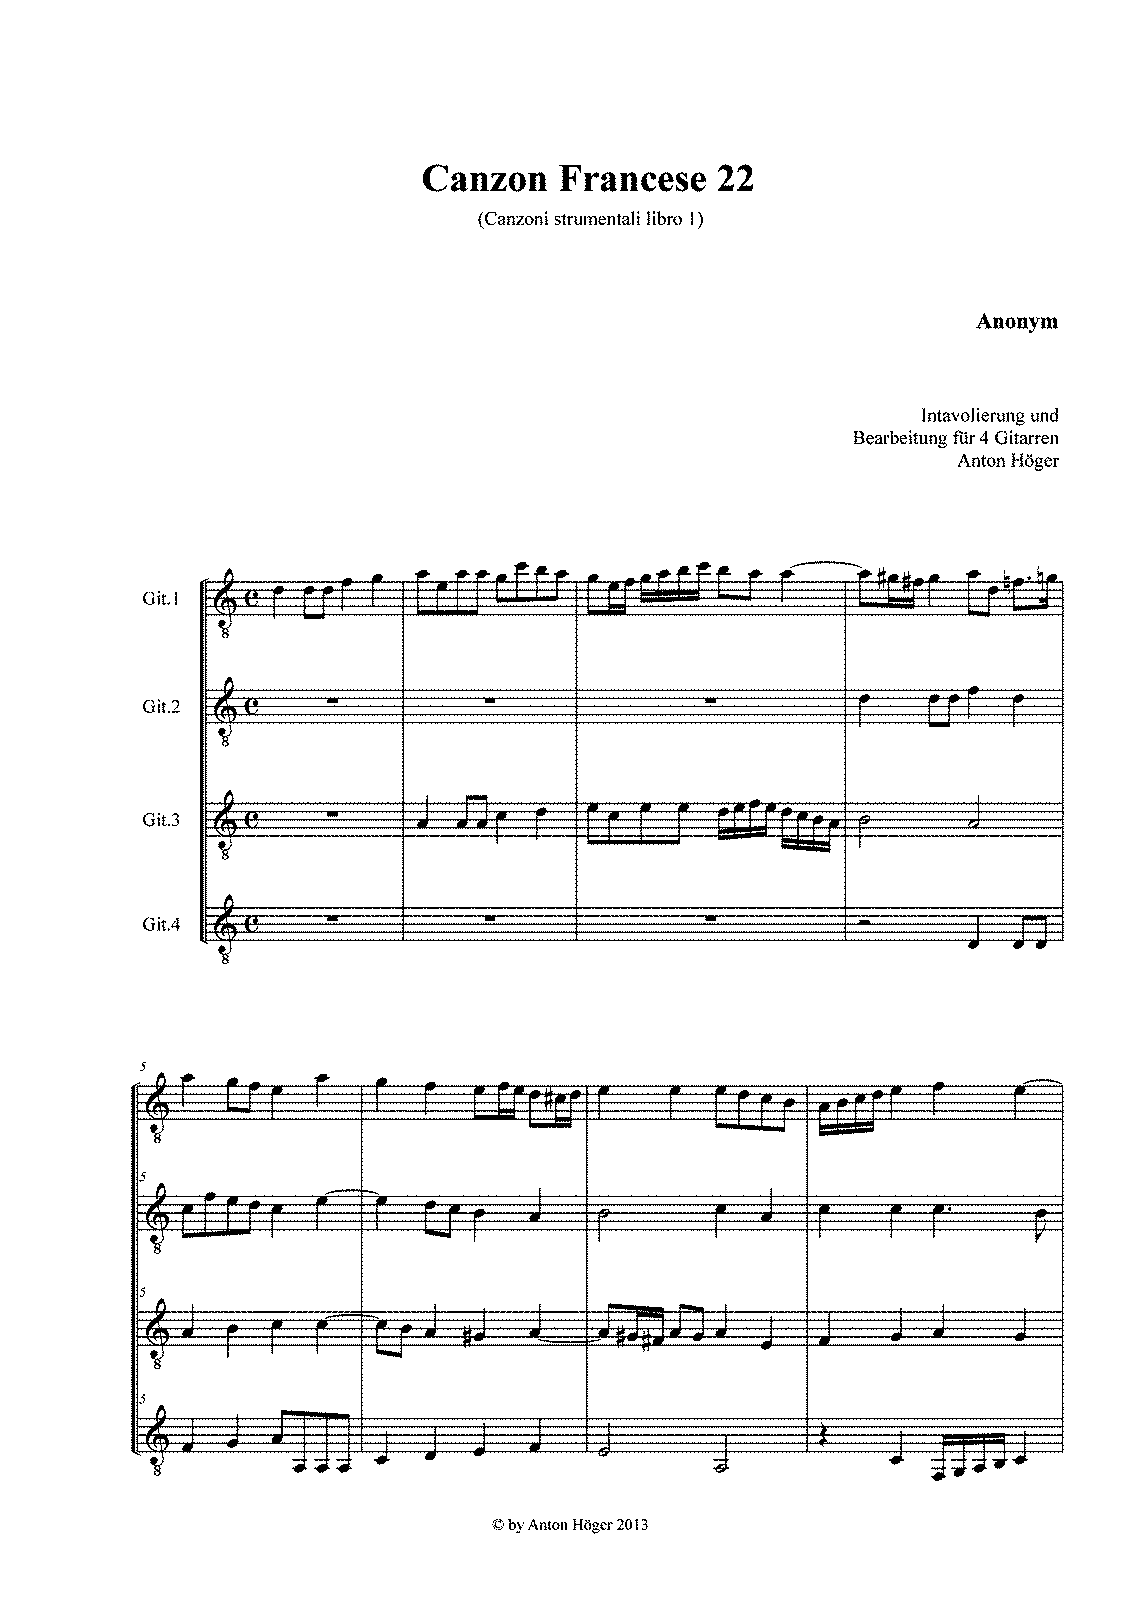 PMLP498516-Anonymous - Canzon Francese 22 (Canzoni strumentali libro 1) -4Git.pdf